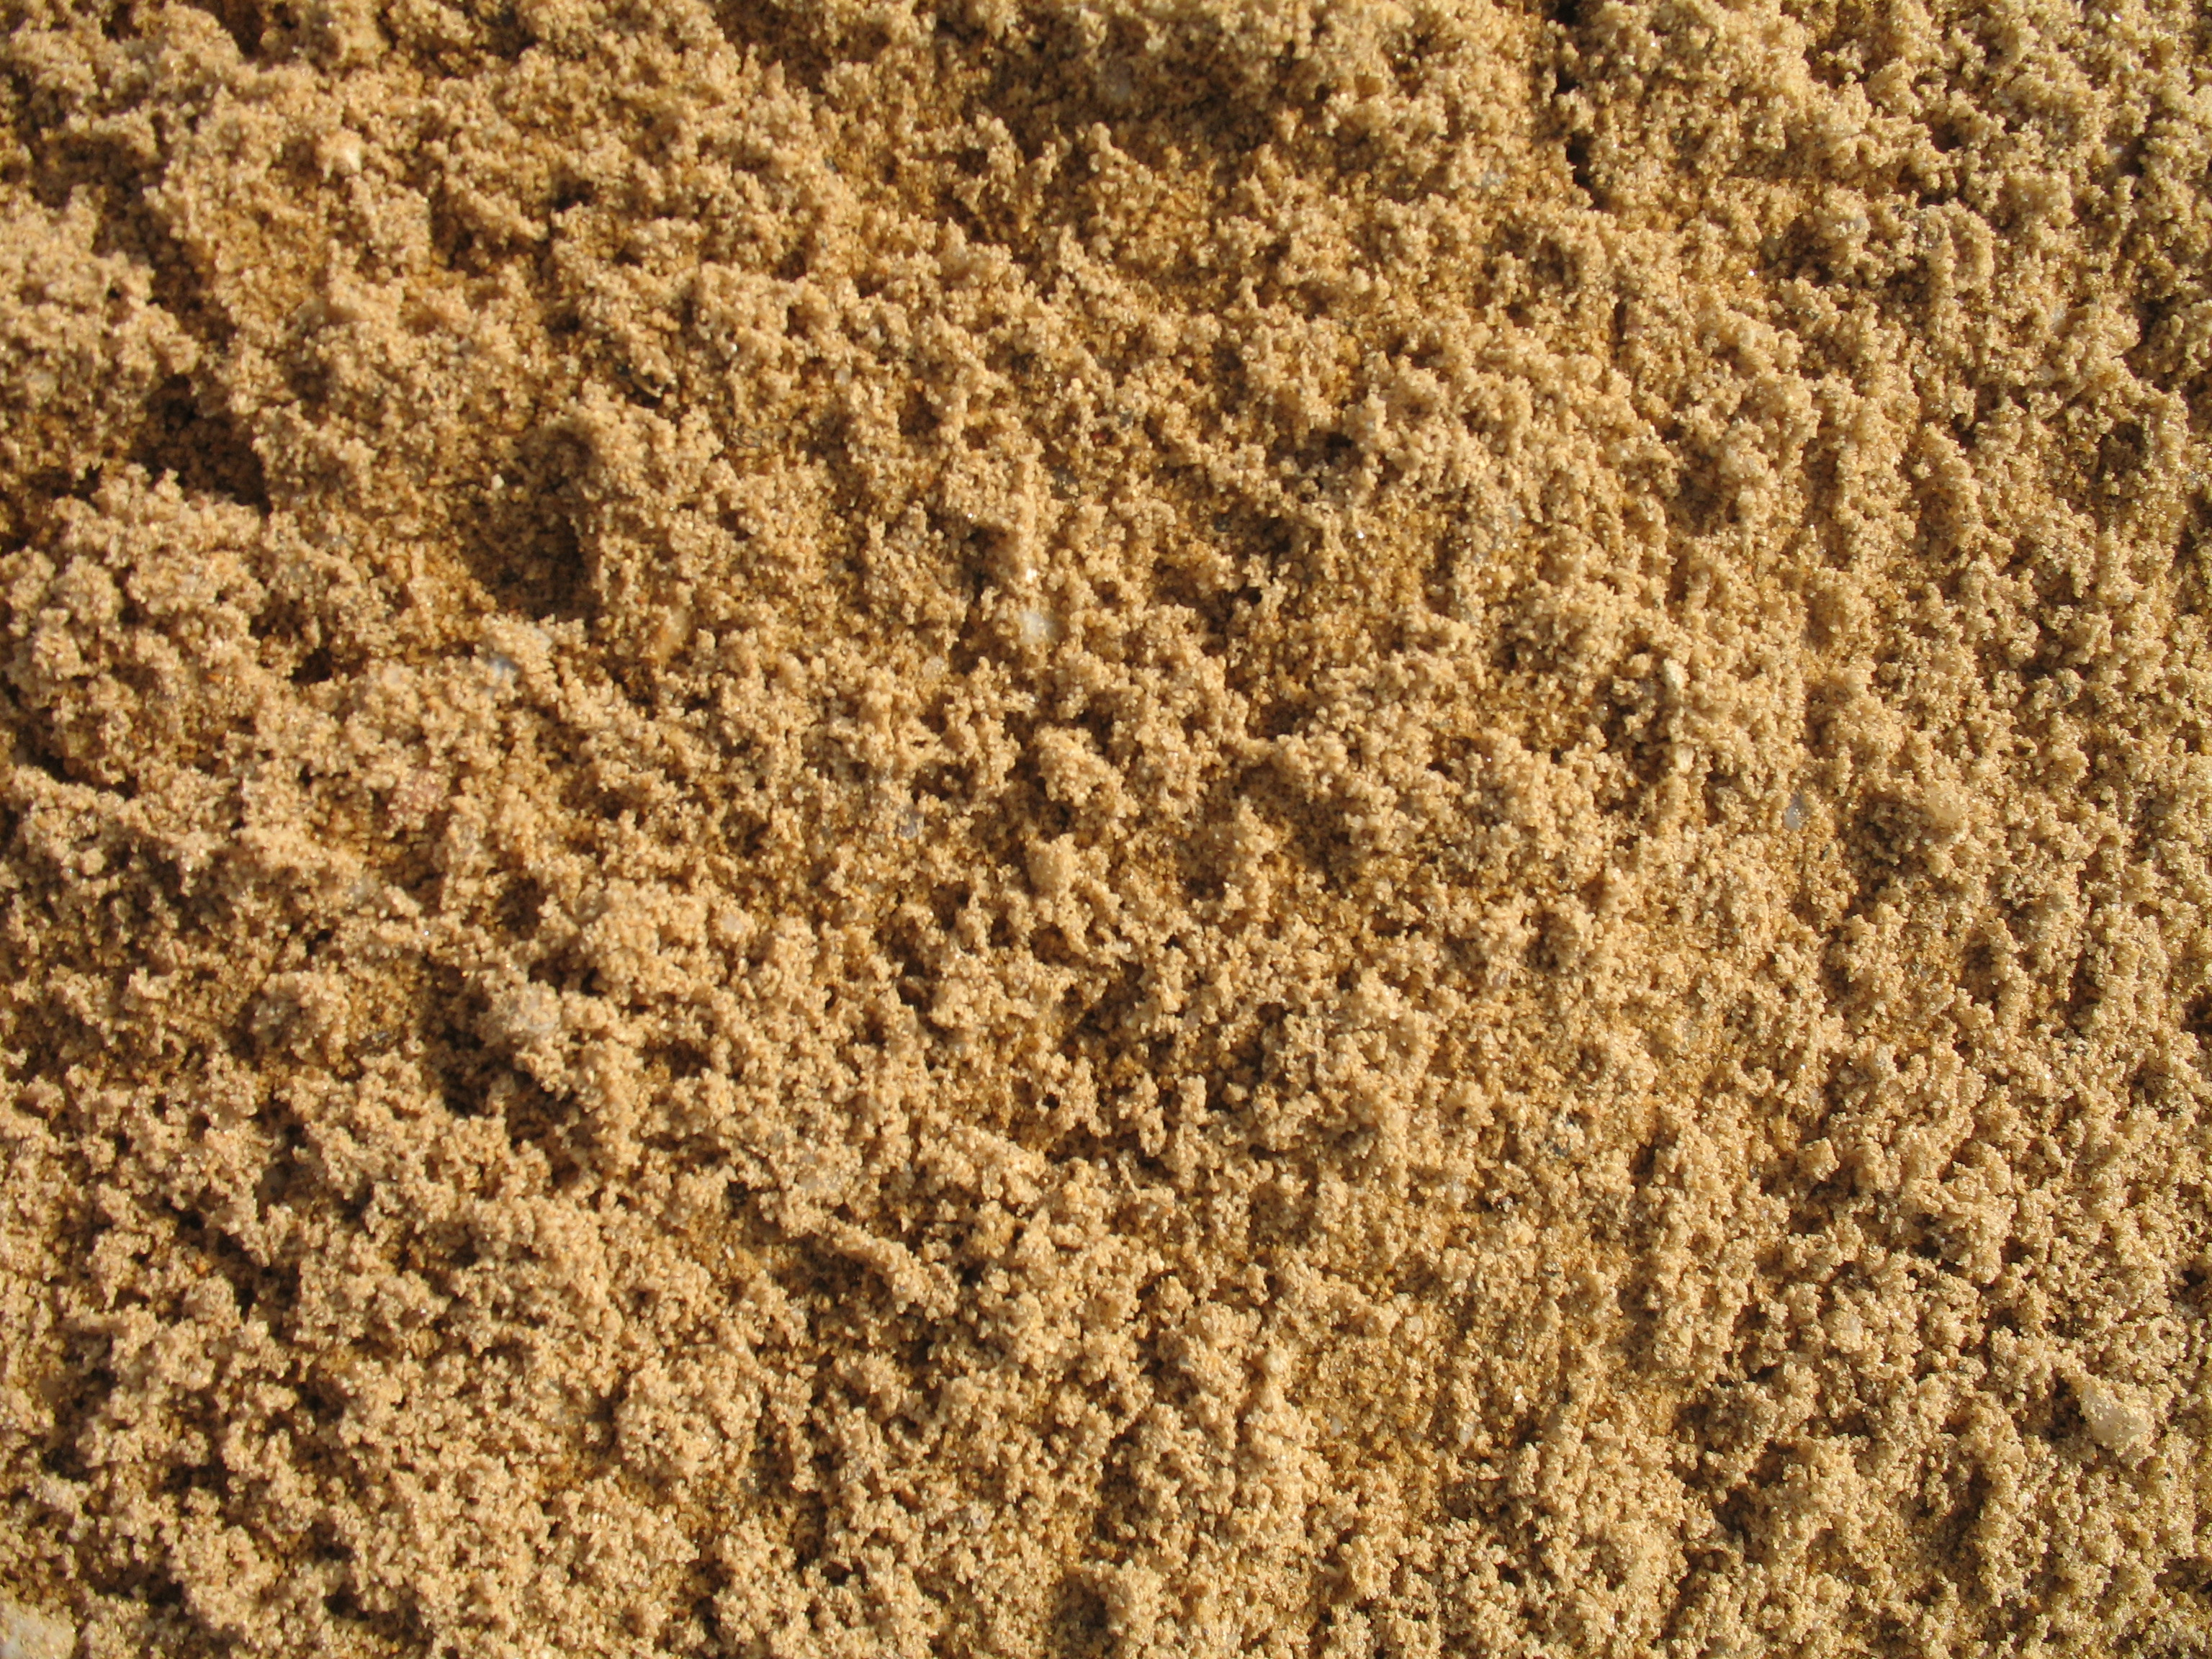 sandy soil Sandy loam soils are popularly known for their excess water-drainage property as well as nutrient content they are considered to play a very important role when it comes to the healthy growth of plants in a garden.